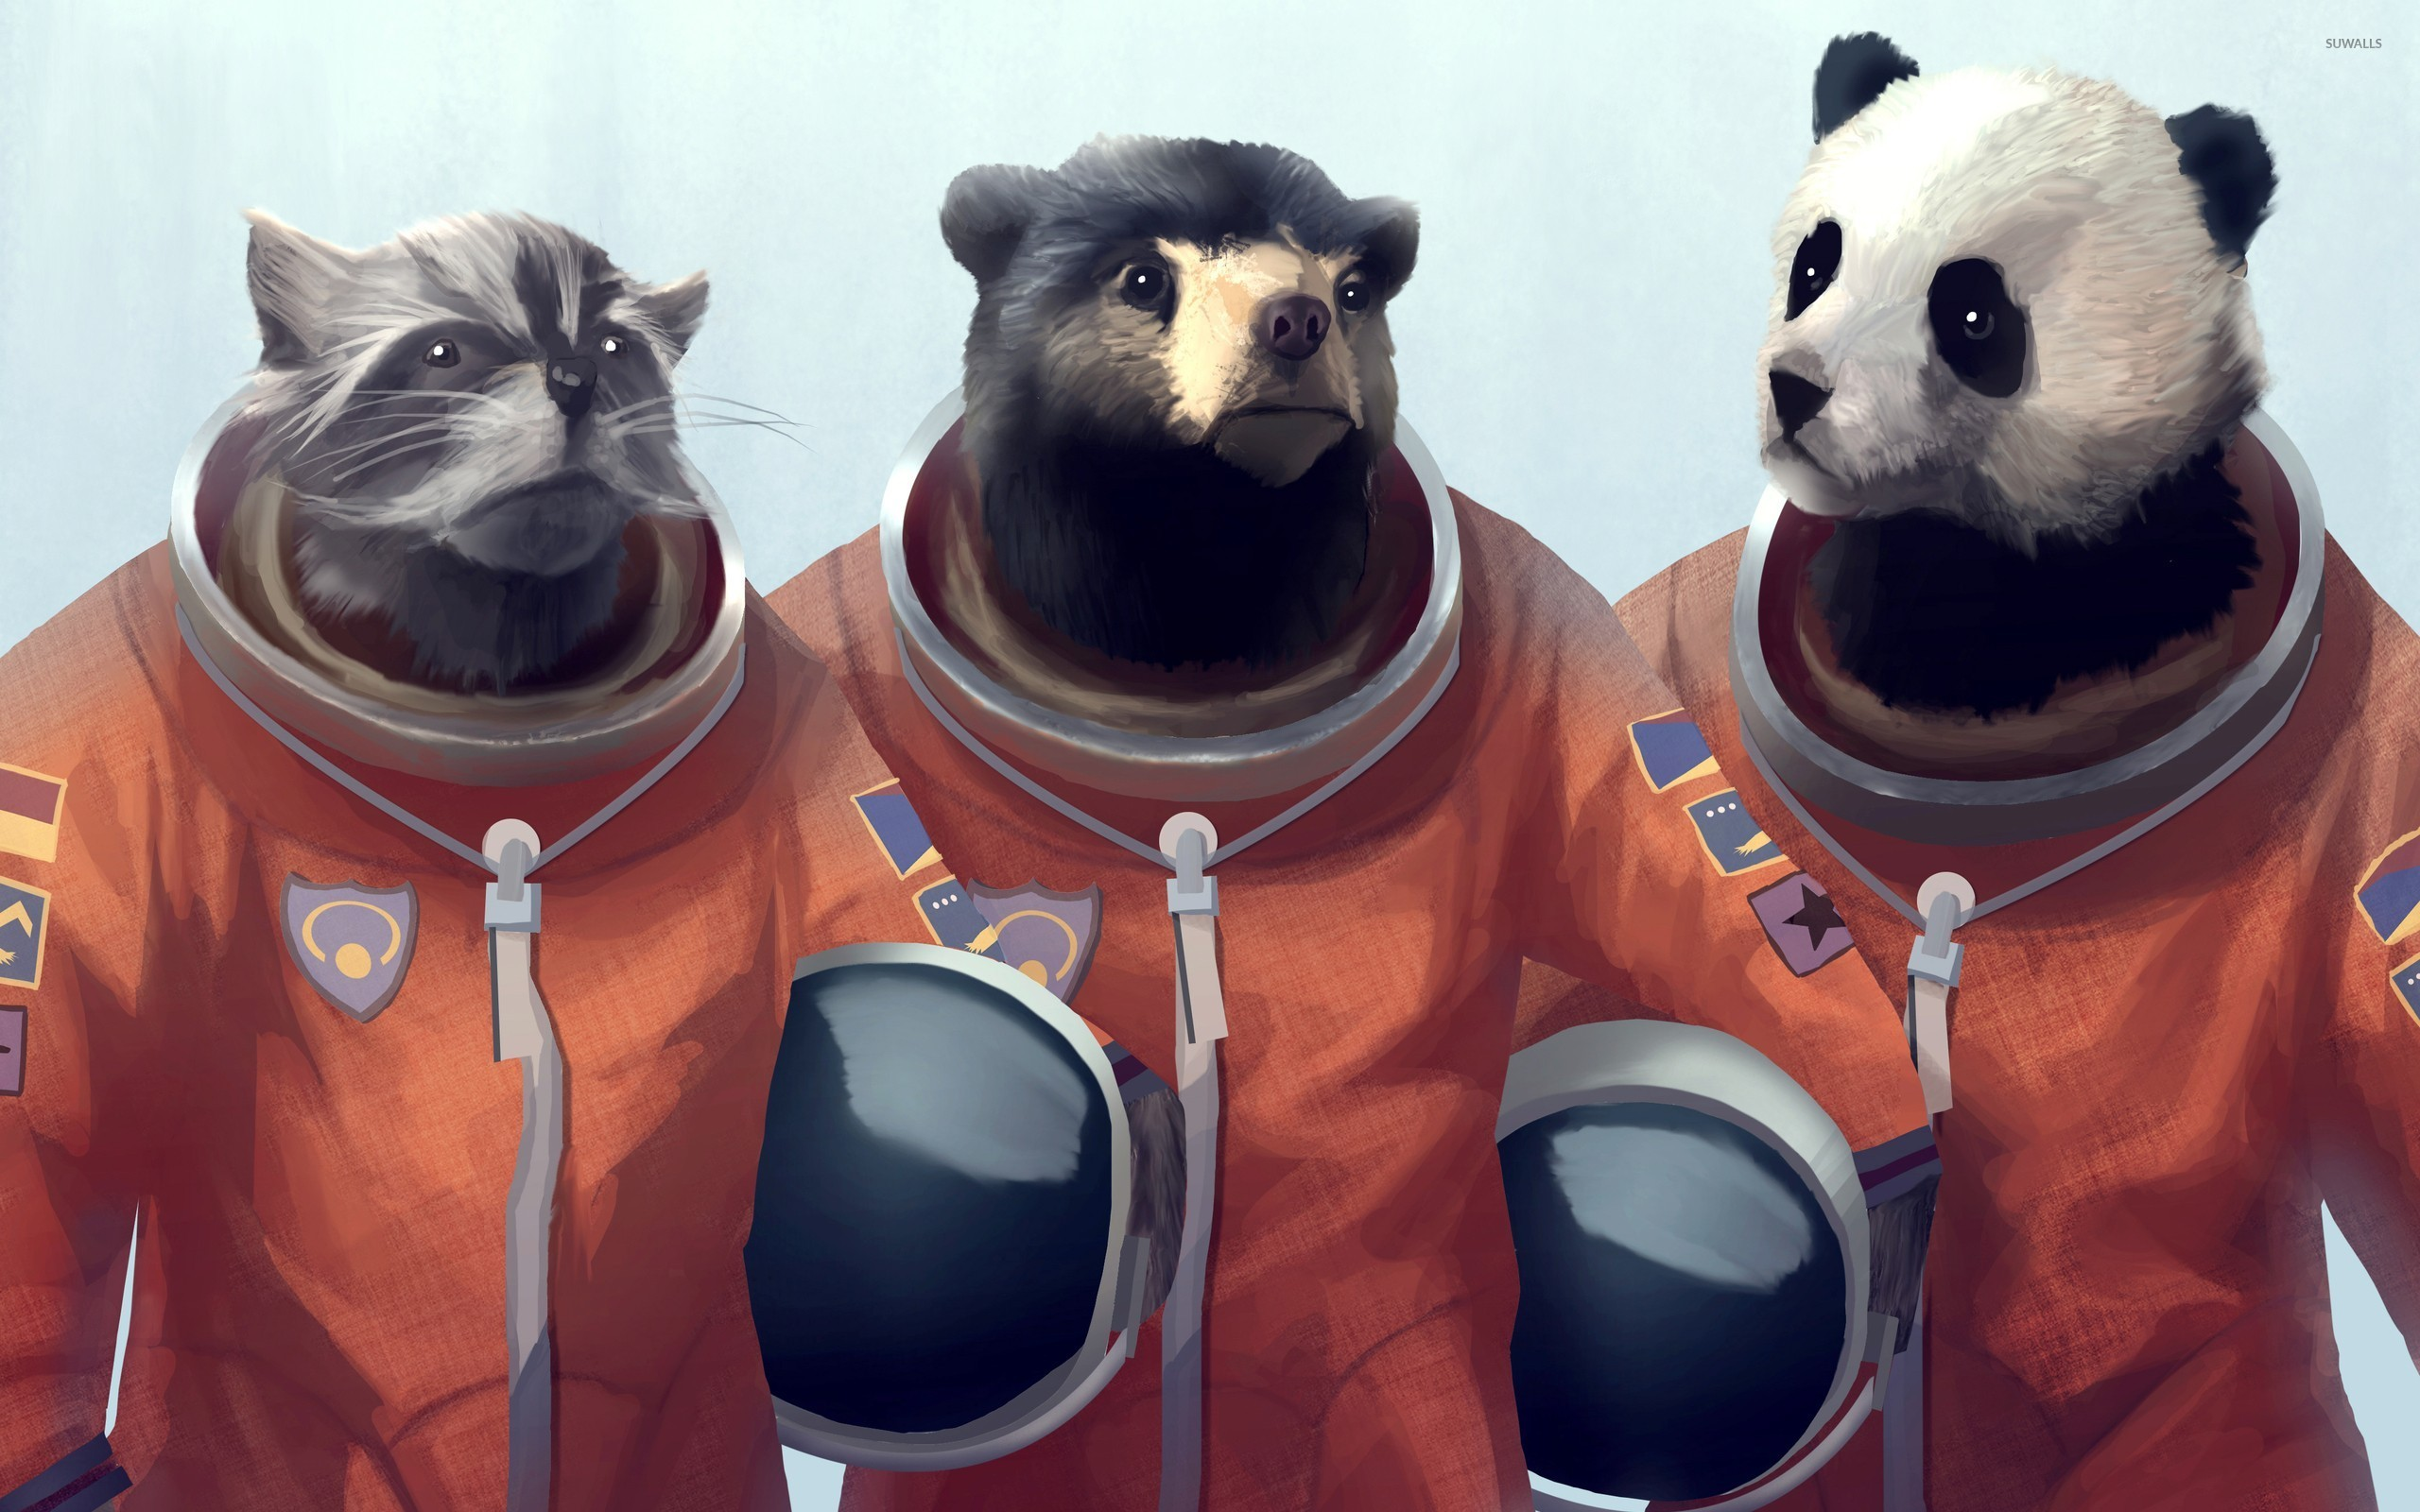 Animal astronauts wallpaper - Funny wallpapers - #29055